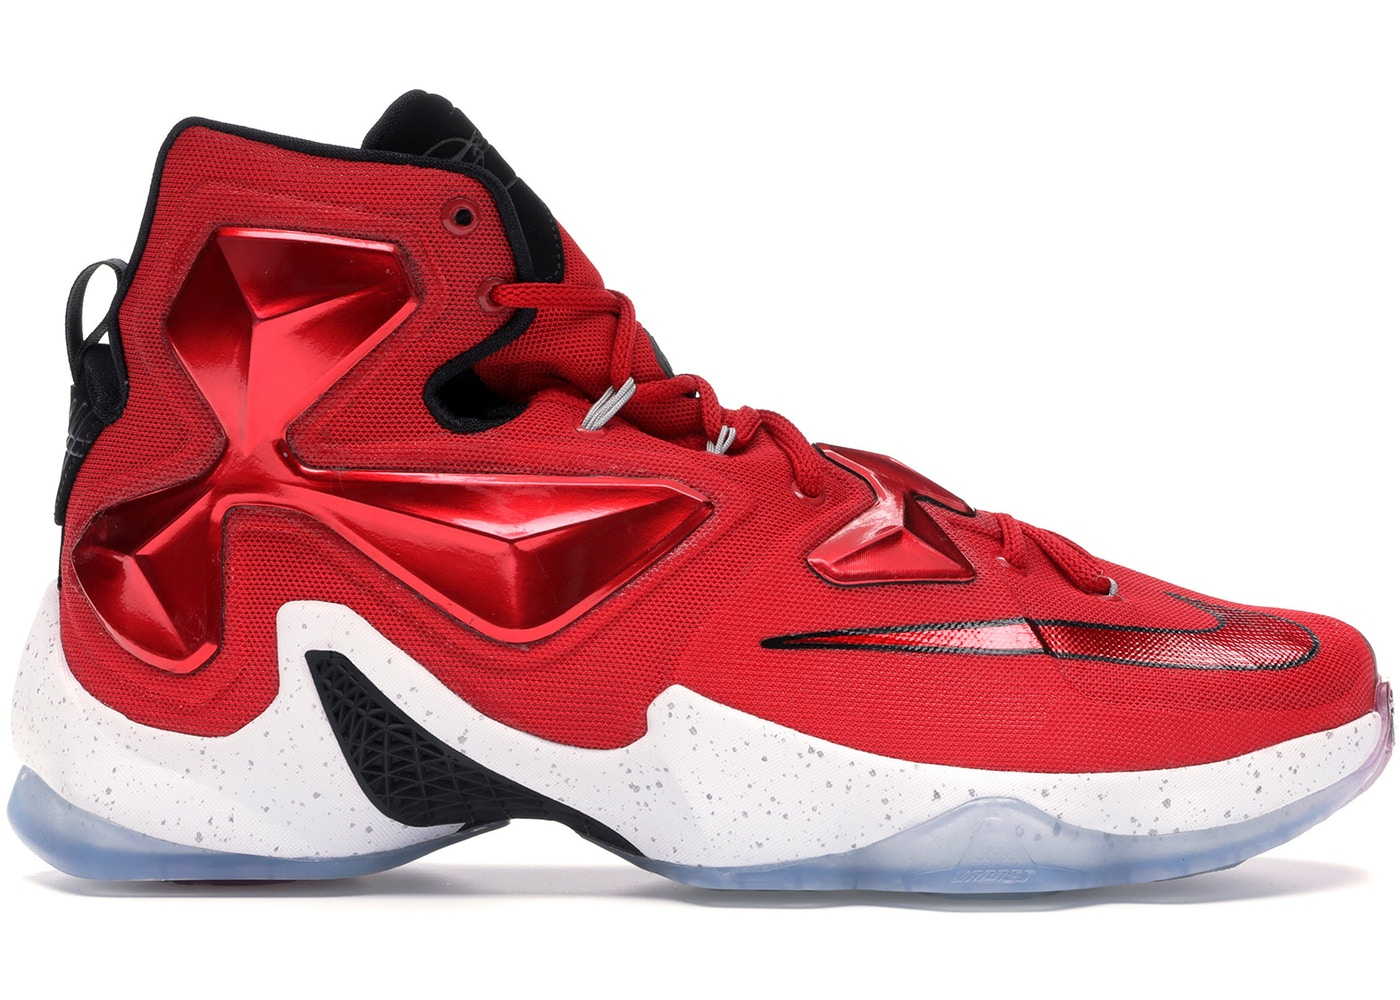 Ranking Every Single Nike x LeBron James Signature Sneaker